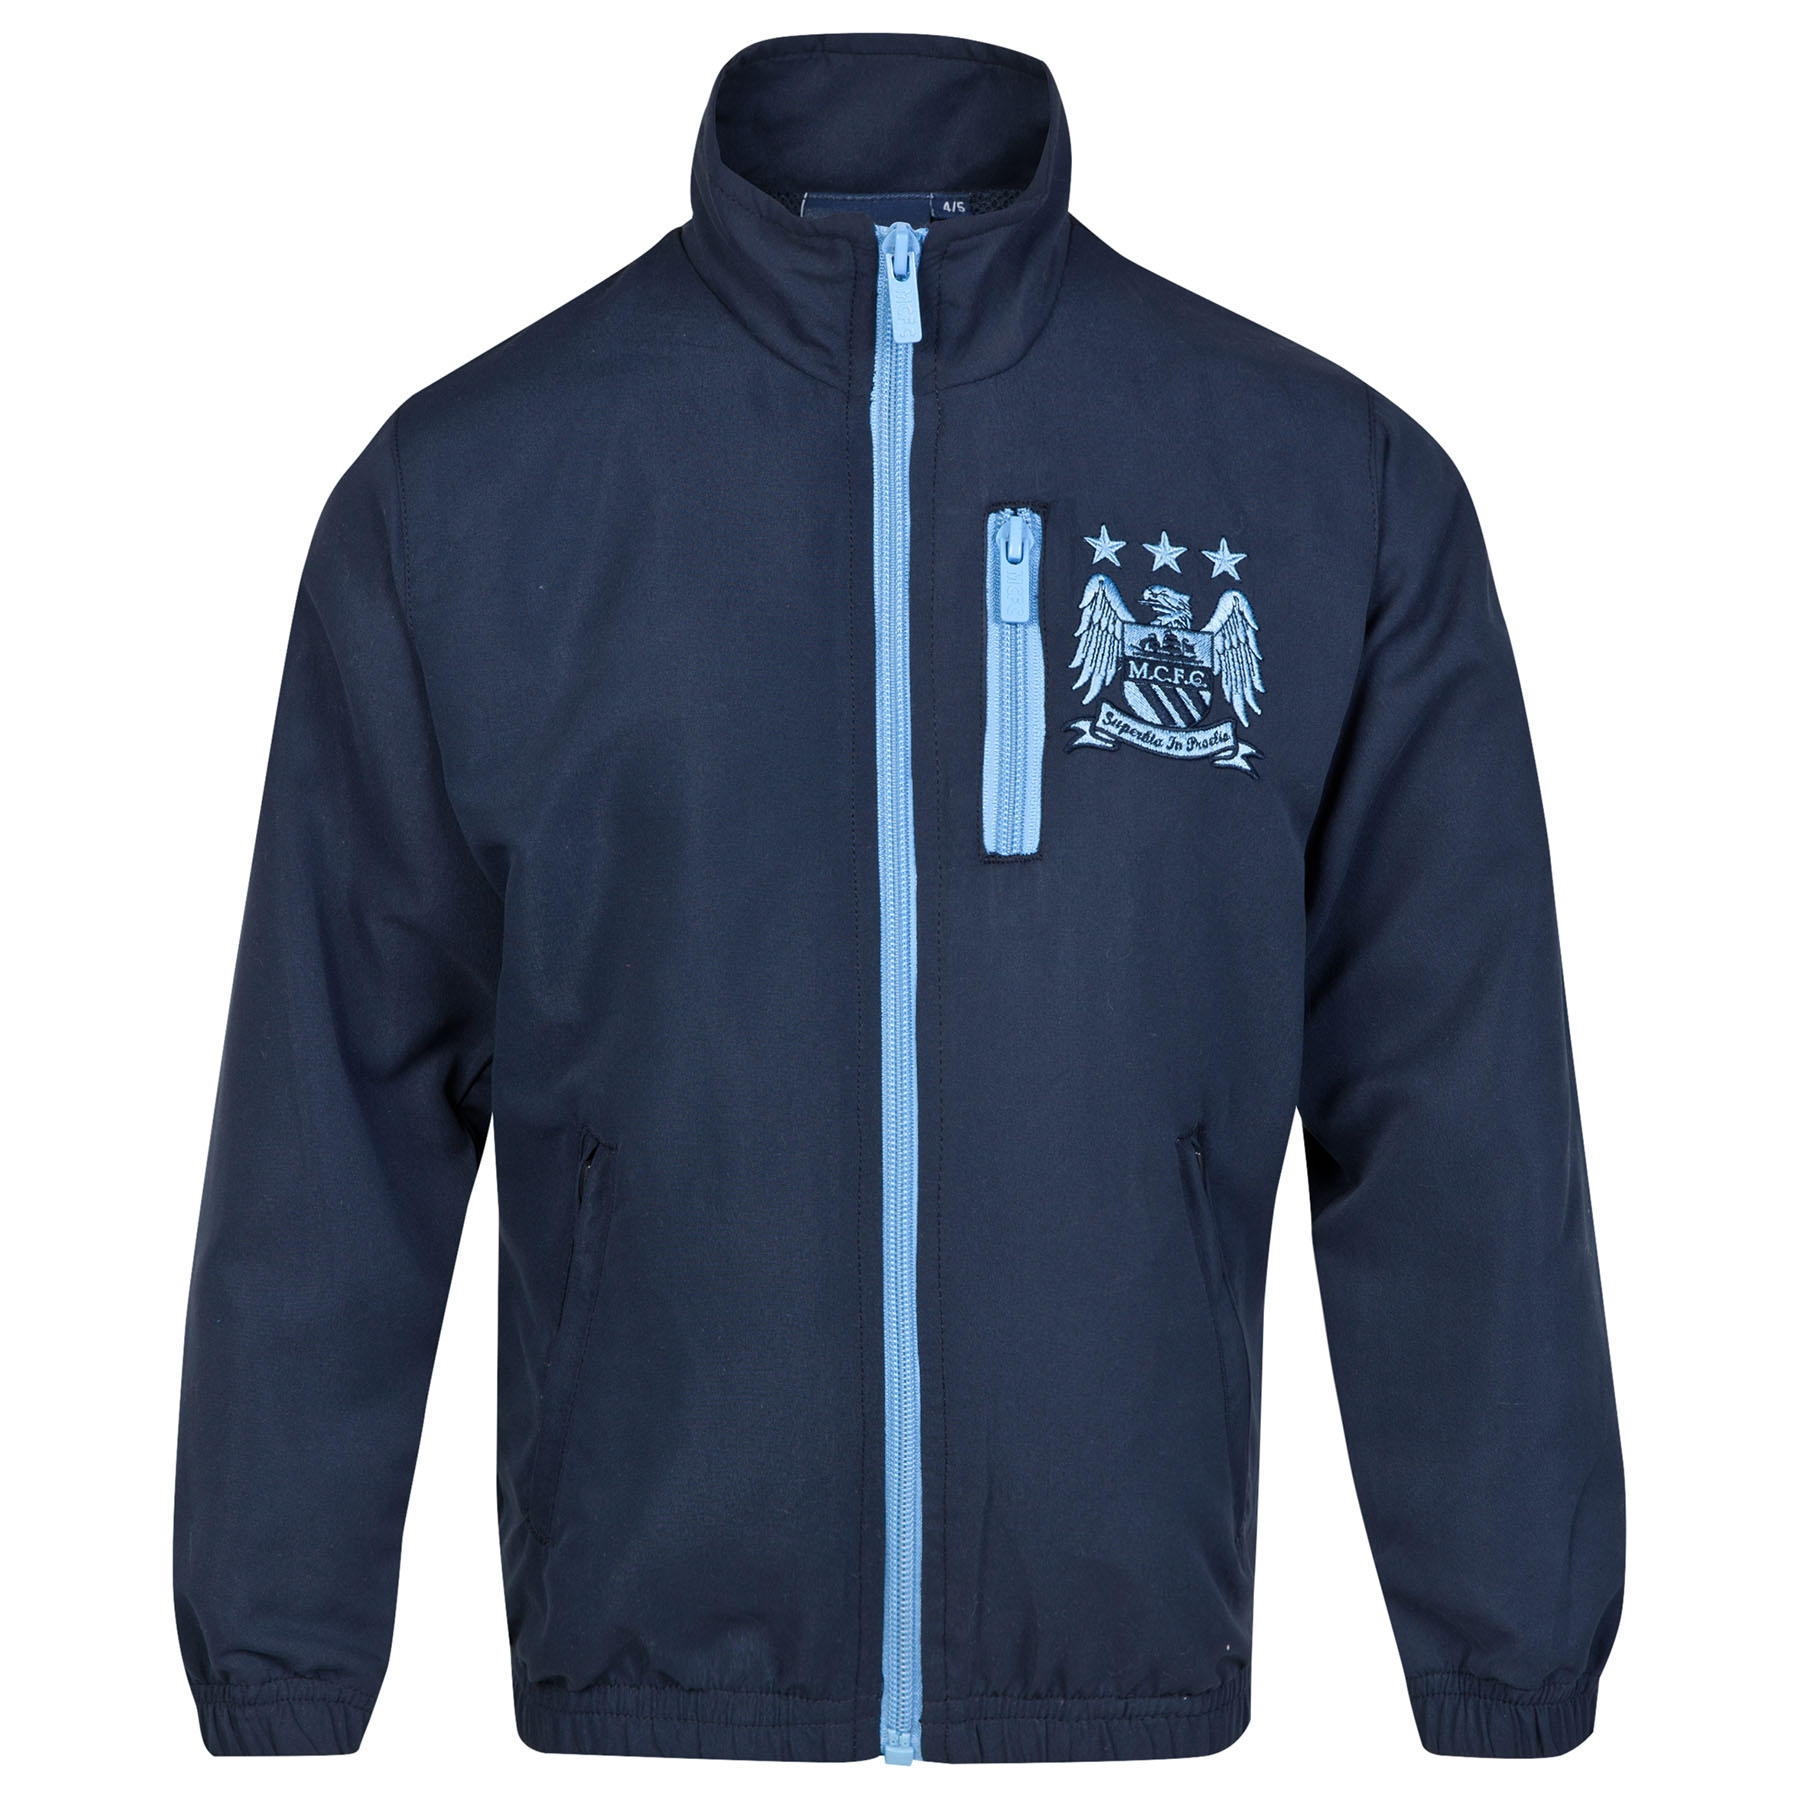 Manchester City Essential Track Jacket- Navy - Infant Boys